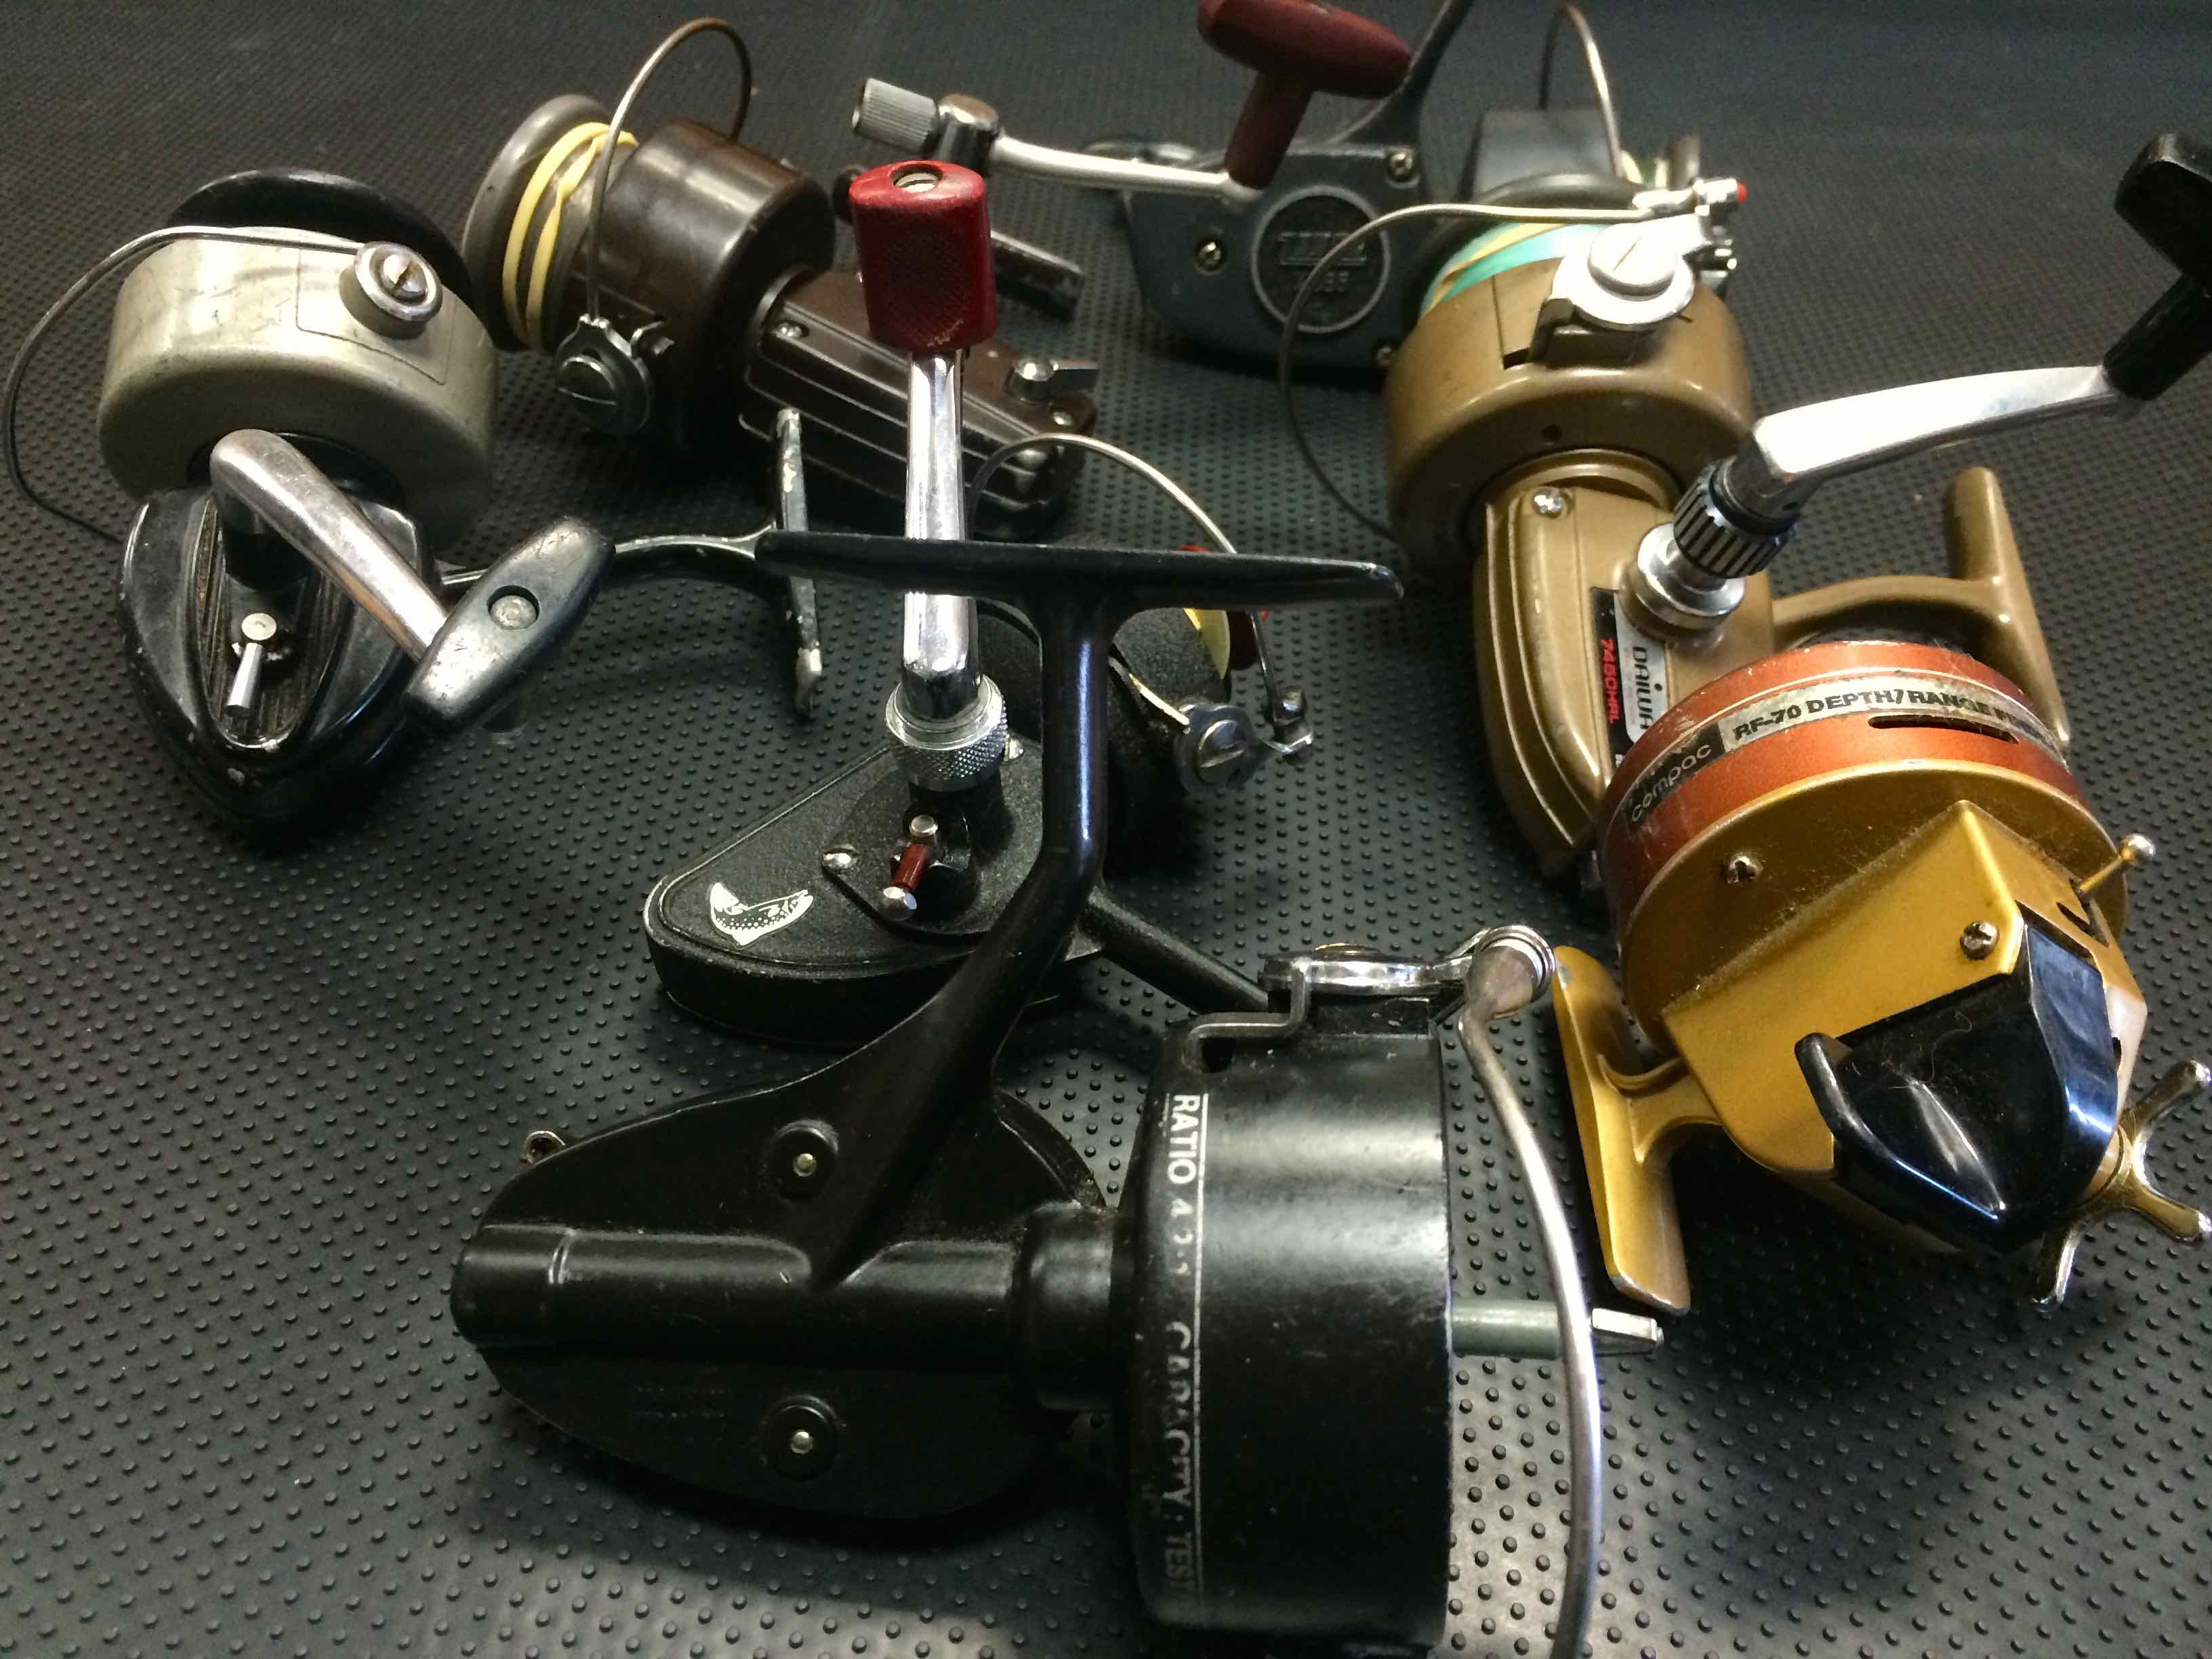 Vintage Spinning Reels Resized for Web